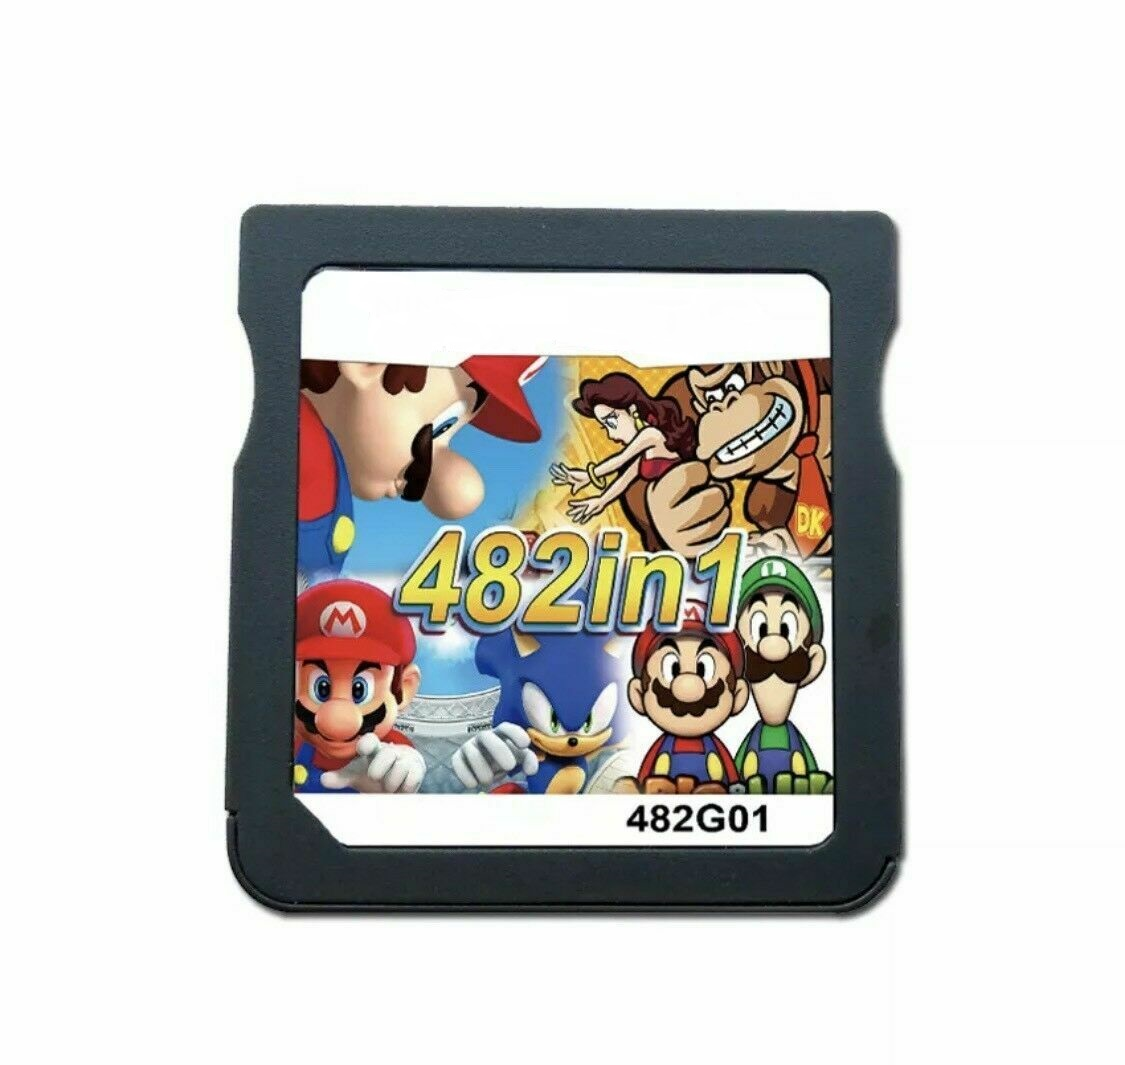 482 In 1 For Nintendo for DS/DSL/2DS/3DS/DSI Video Game Cartridge Console Card